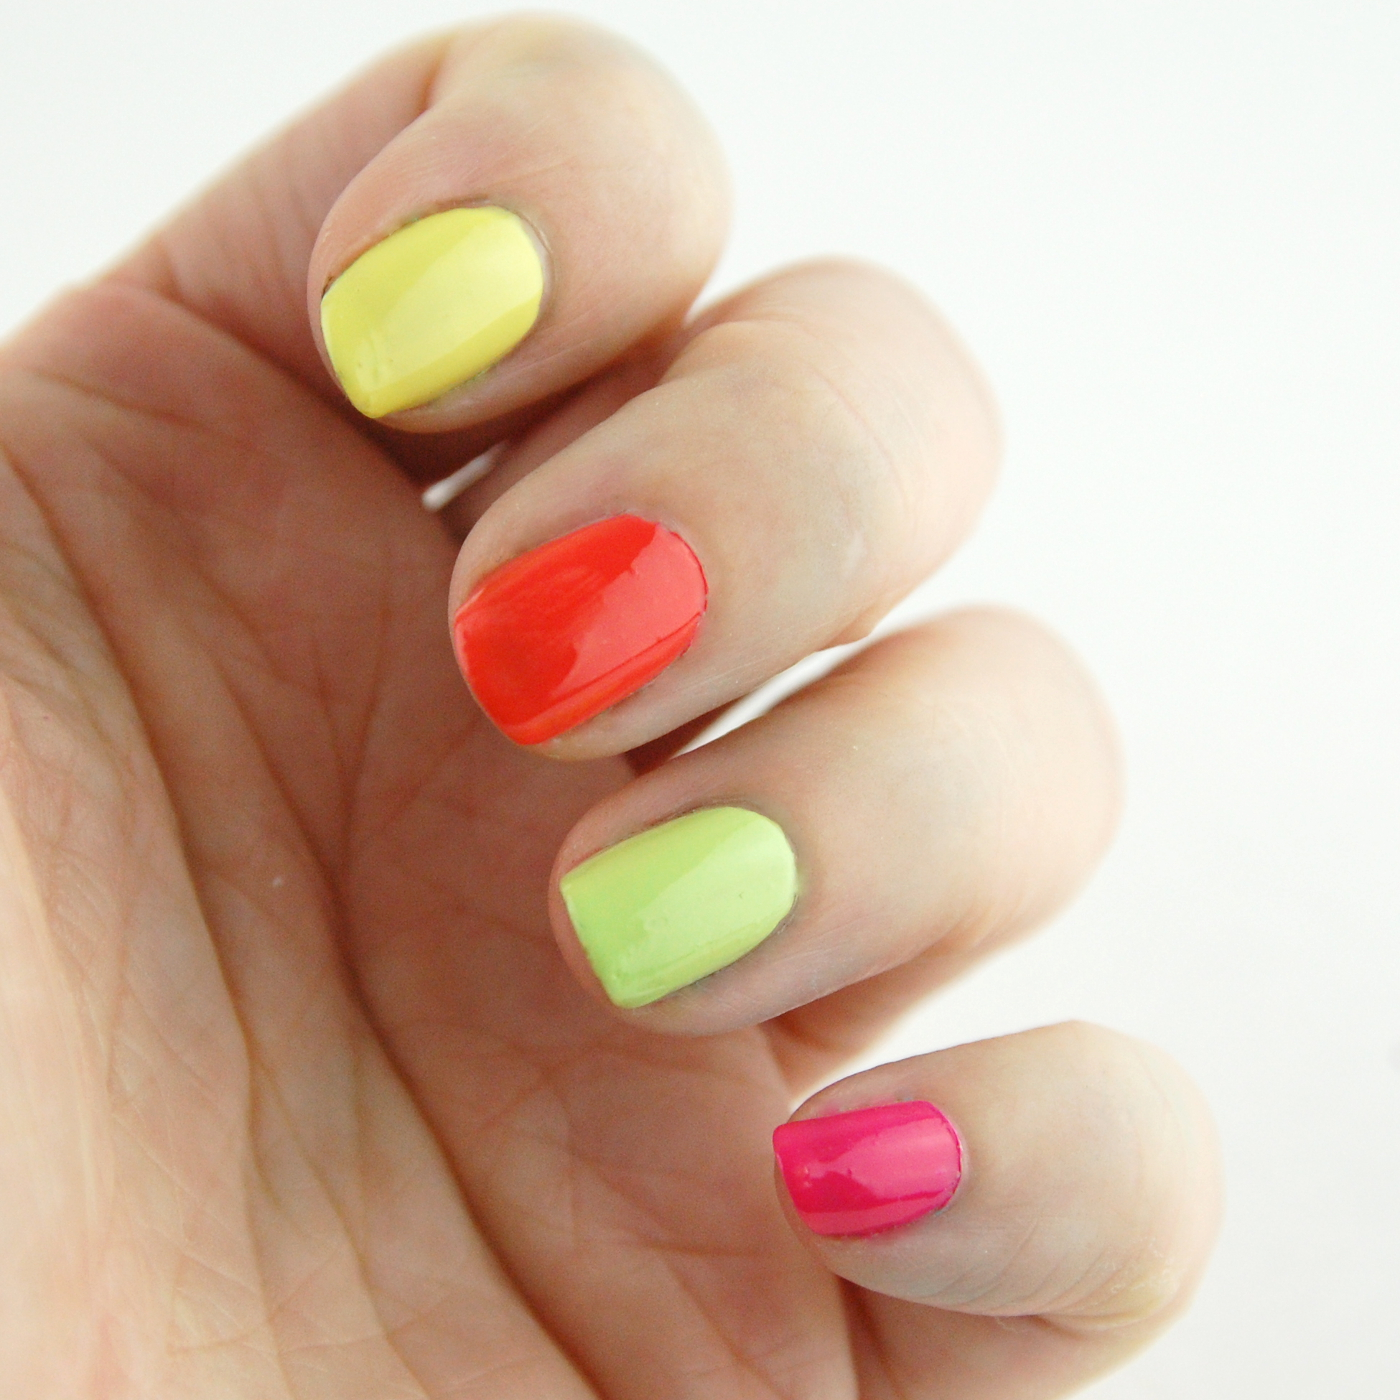 Colorful Neon Nail Polish 2 Mold - Nail Art Ideas - morihati.com